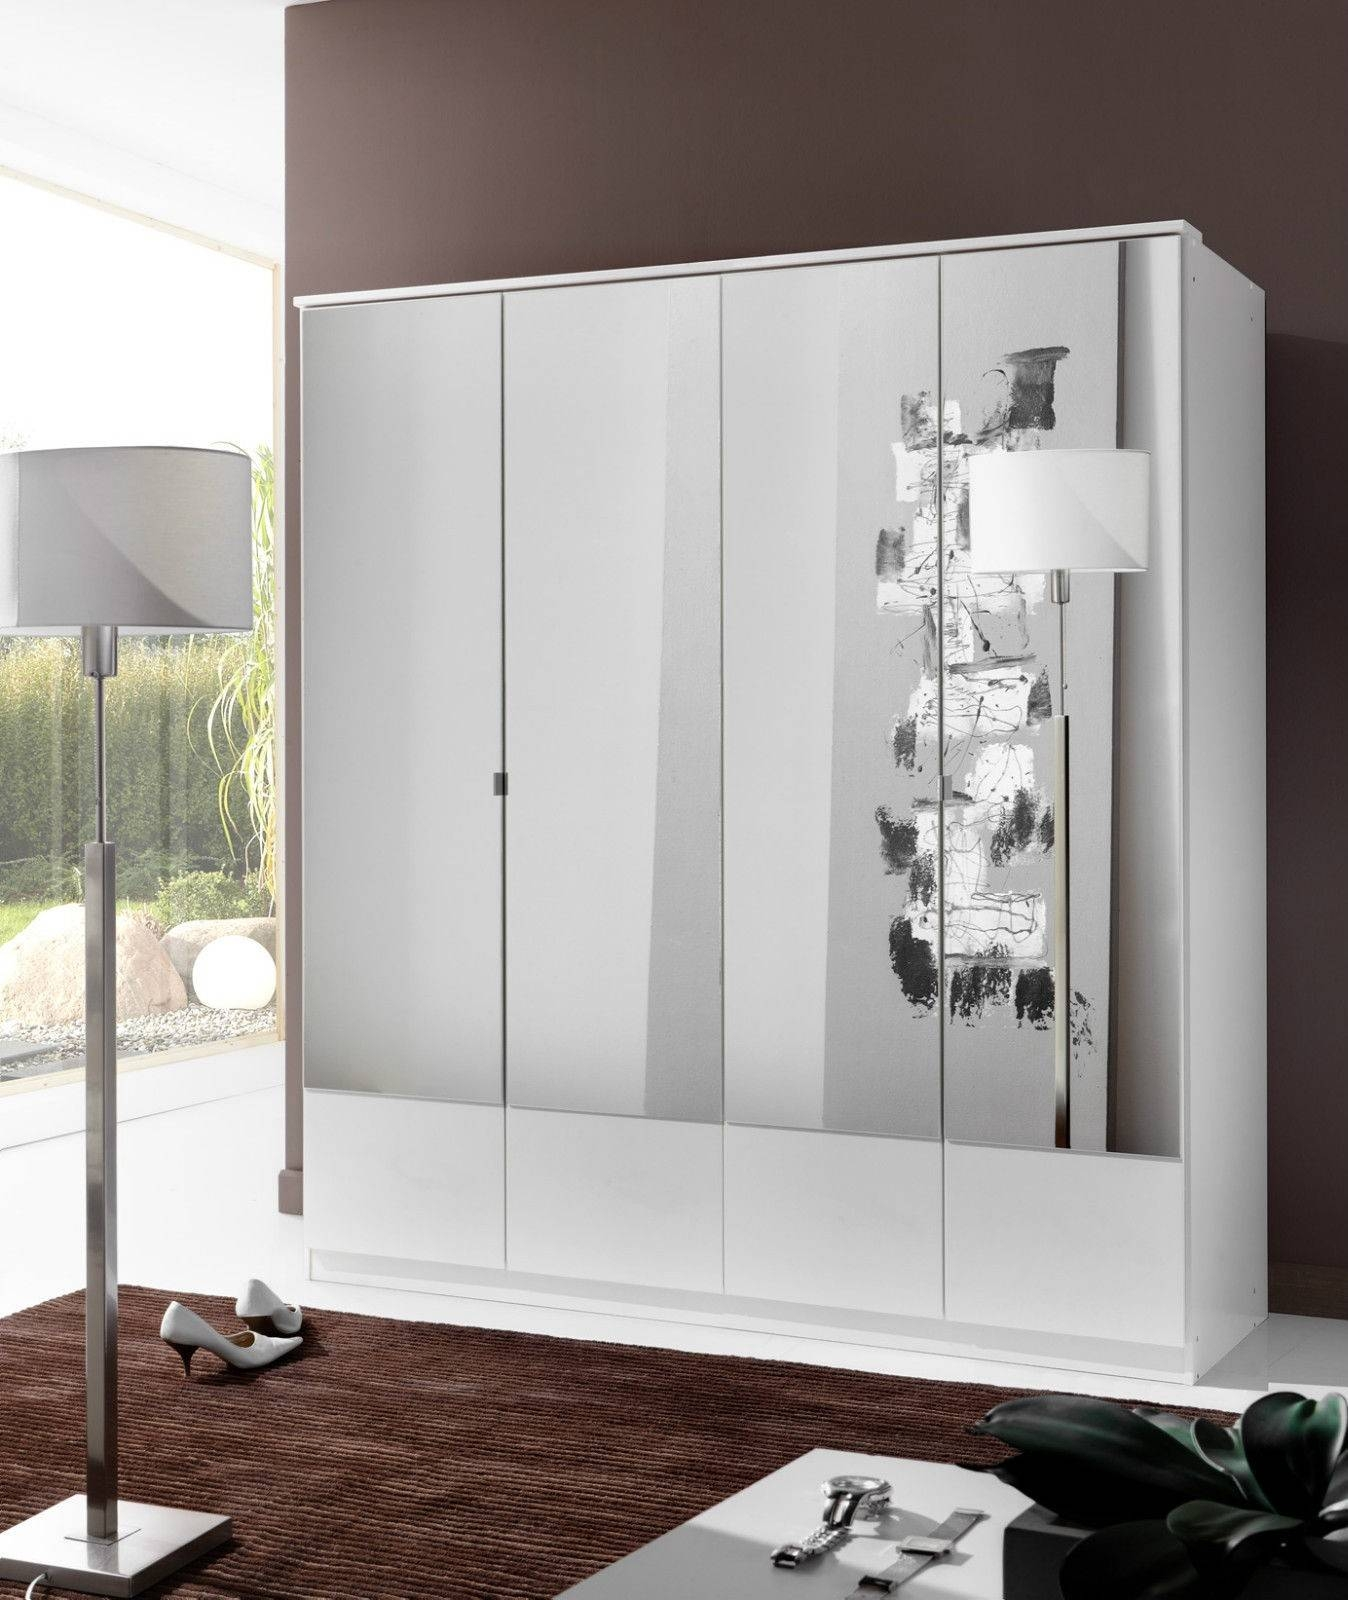 Slumberhaus 'imago' German Made Modern Alpine White & Mirror 4 with regard to 3 Door White Wardrobes (Image 21 of 30)